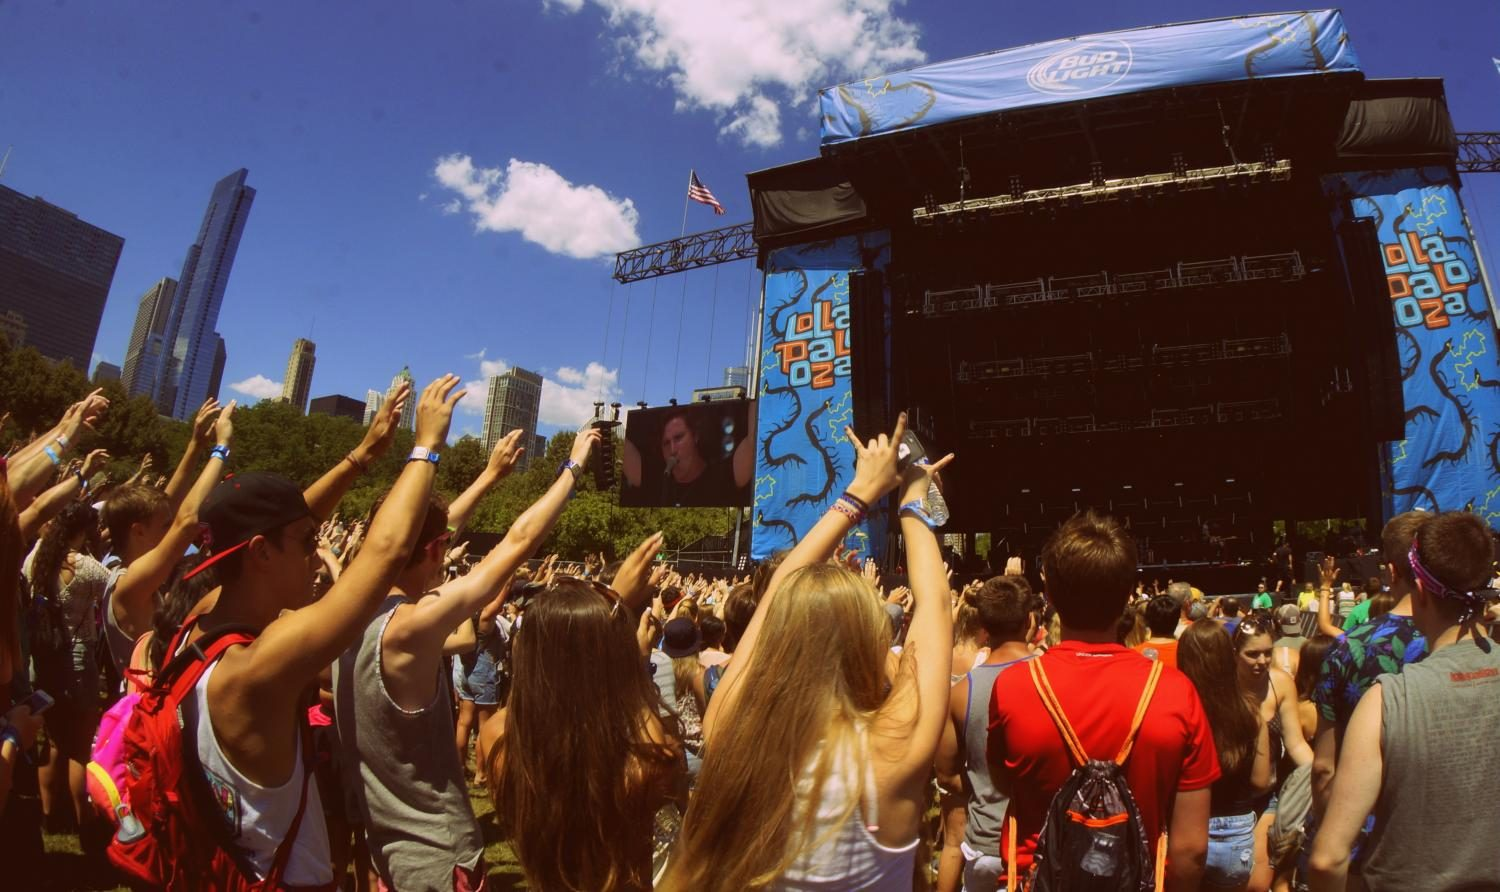 Last year, Lollapalooza added a fourth day of music to celebrate their 25th anniversary. After receiving such a positive response from fans, the festival will be four days long again this year.